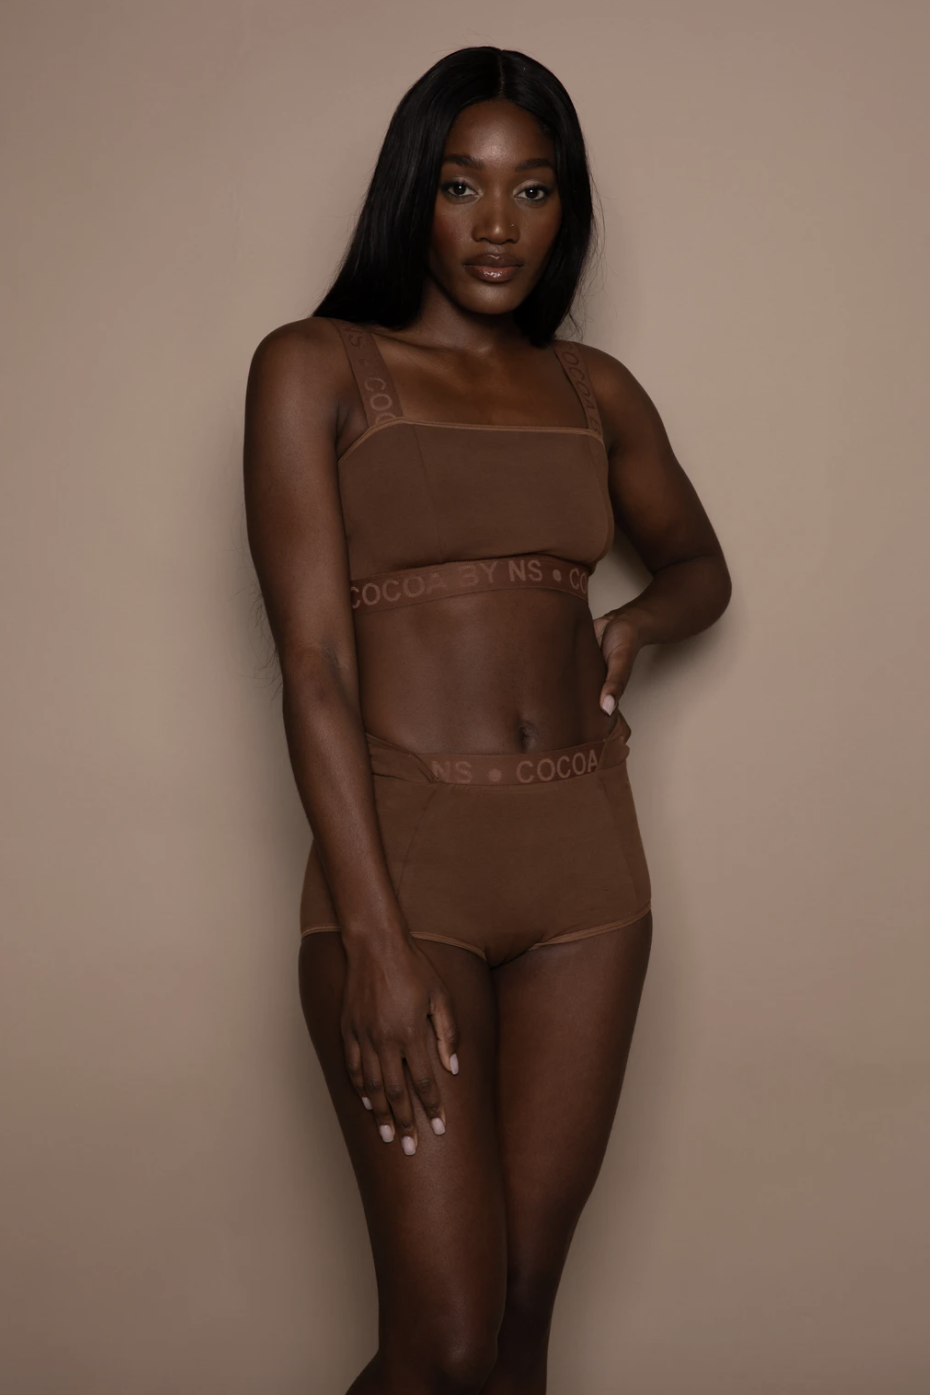 "<p><strong>Nubian Skin</strong></p><p>nubianskin.com</p><p><strong>$32.48</strong></p><p><a href=""https://www.nubianskin.com/collections/lingerie/products/high-waist-boy-short?variant=31535333670974"" rel=""nofollow noopener"" target=""_blank"" data-ylk=""slk:SHOP IT"" class=""link rapid-noclick-resp"">SHOP IT</a></p><p>Nubian Skin offers inclusive nude undergarments, so if you haven't found the right shade for you yet check this pair of undies out. Once you find the perfect match, you'll never turn back. </p>"